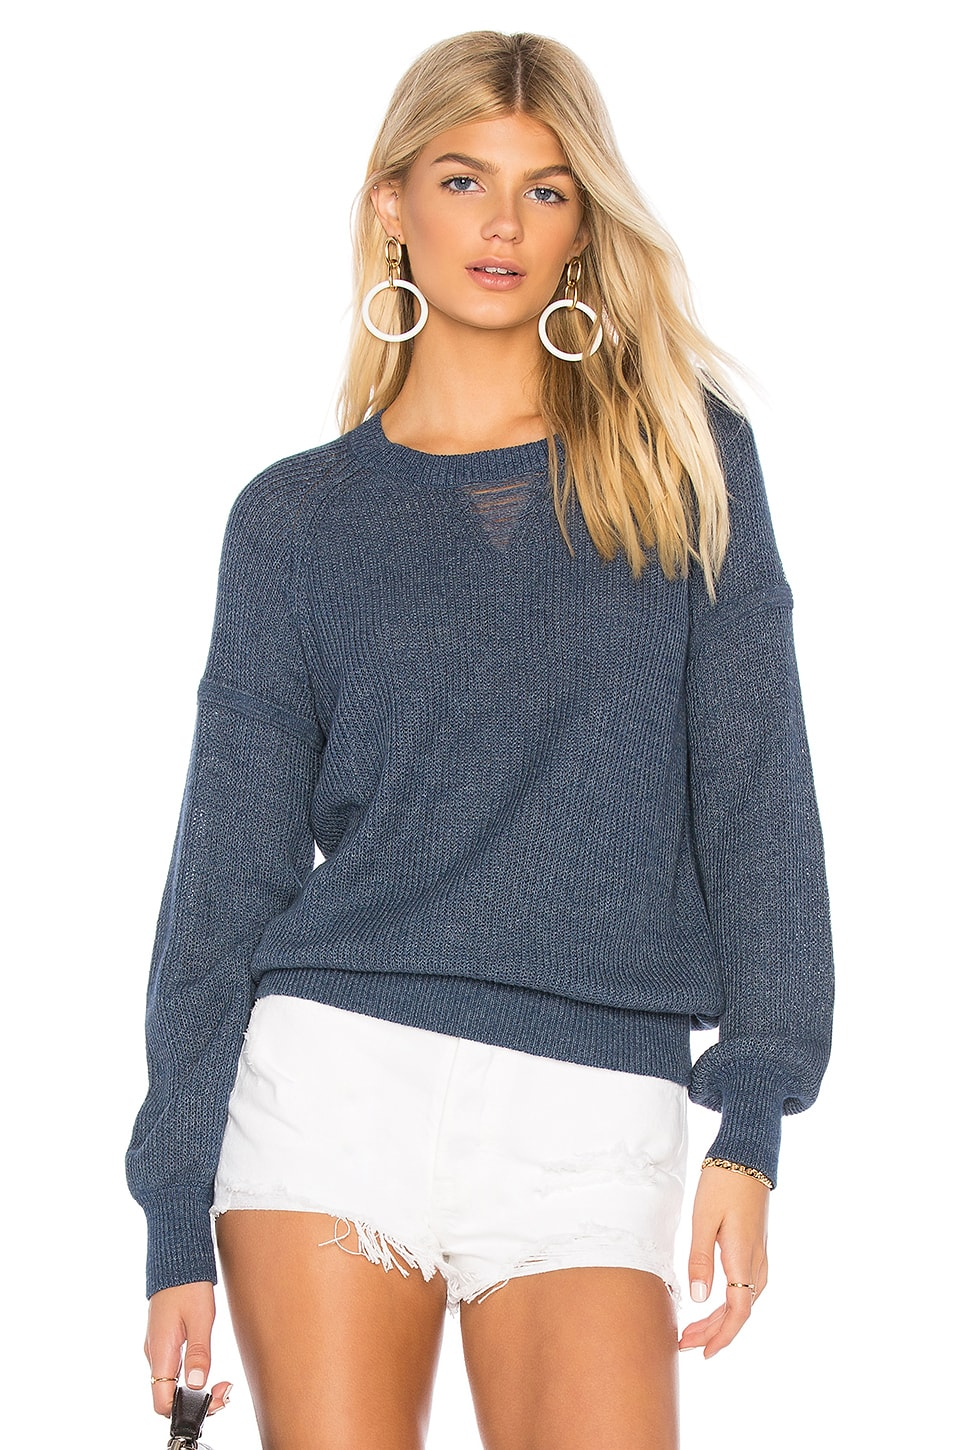 Allyce Sweater